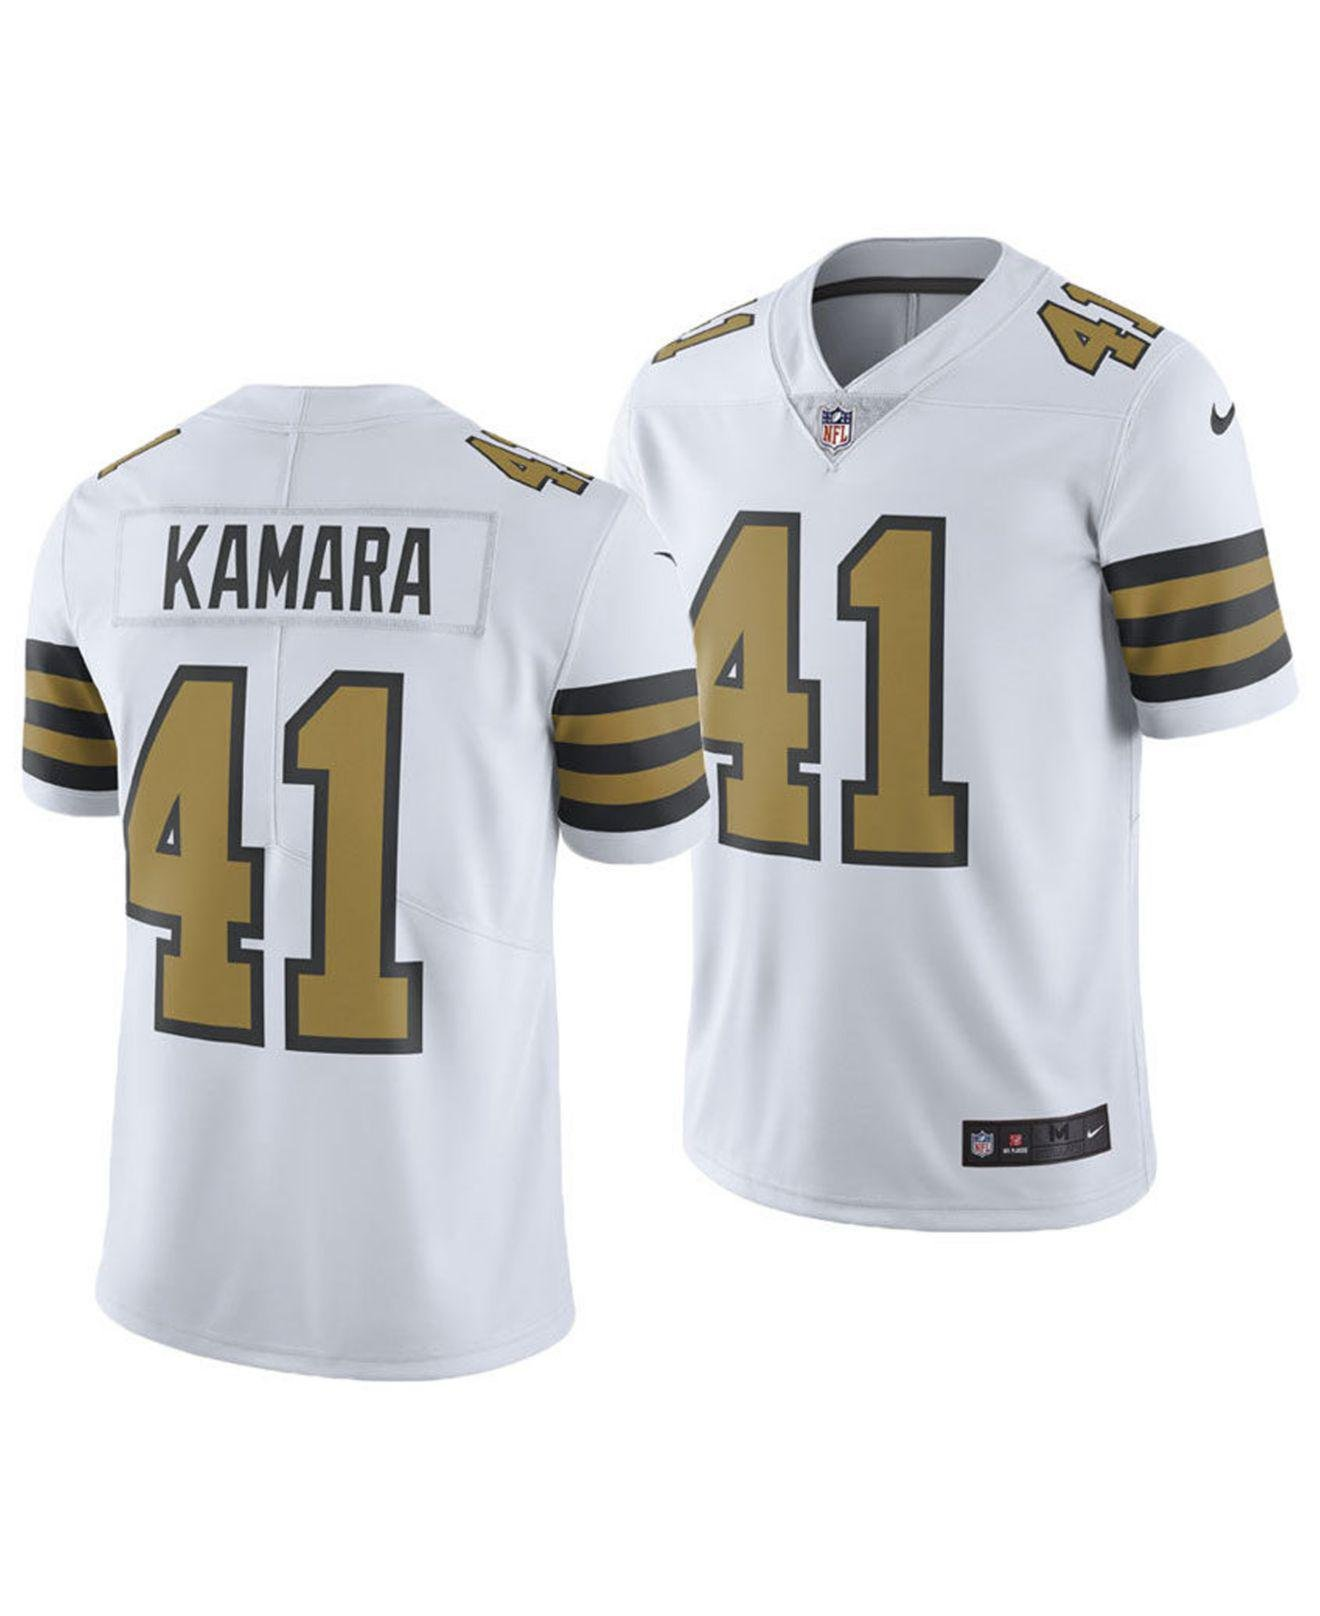 ba00469bdef discount code for drew brees color rush jersey 2a2f3 1f1ca;